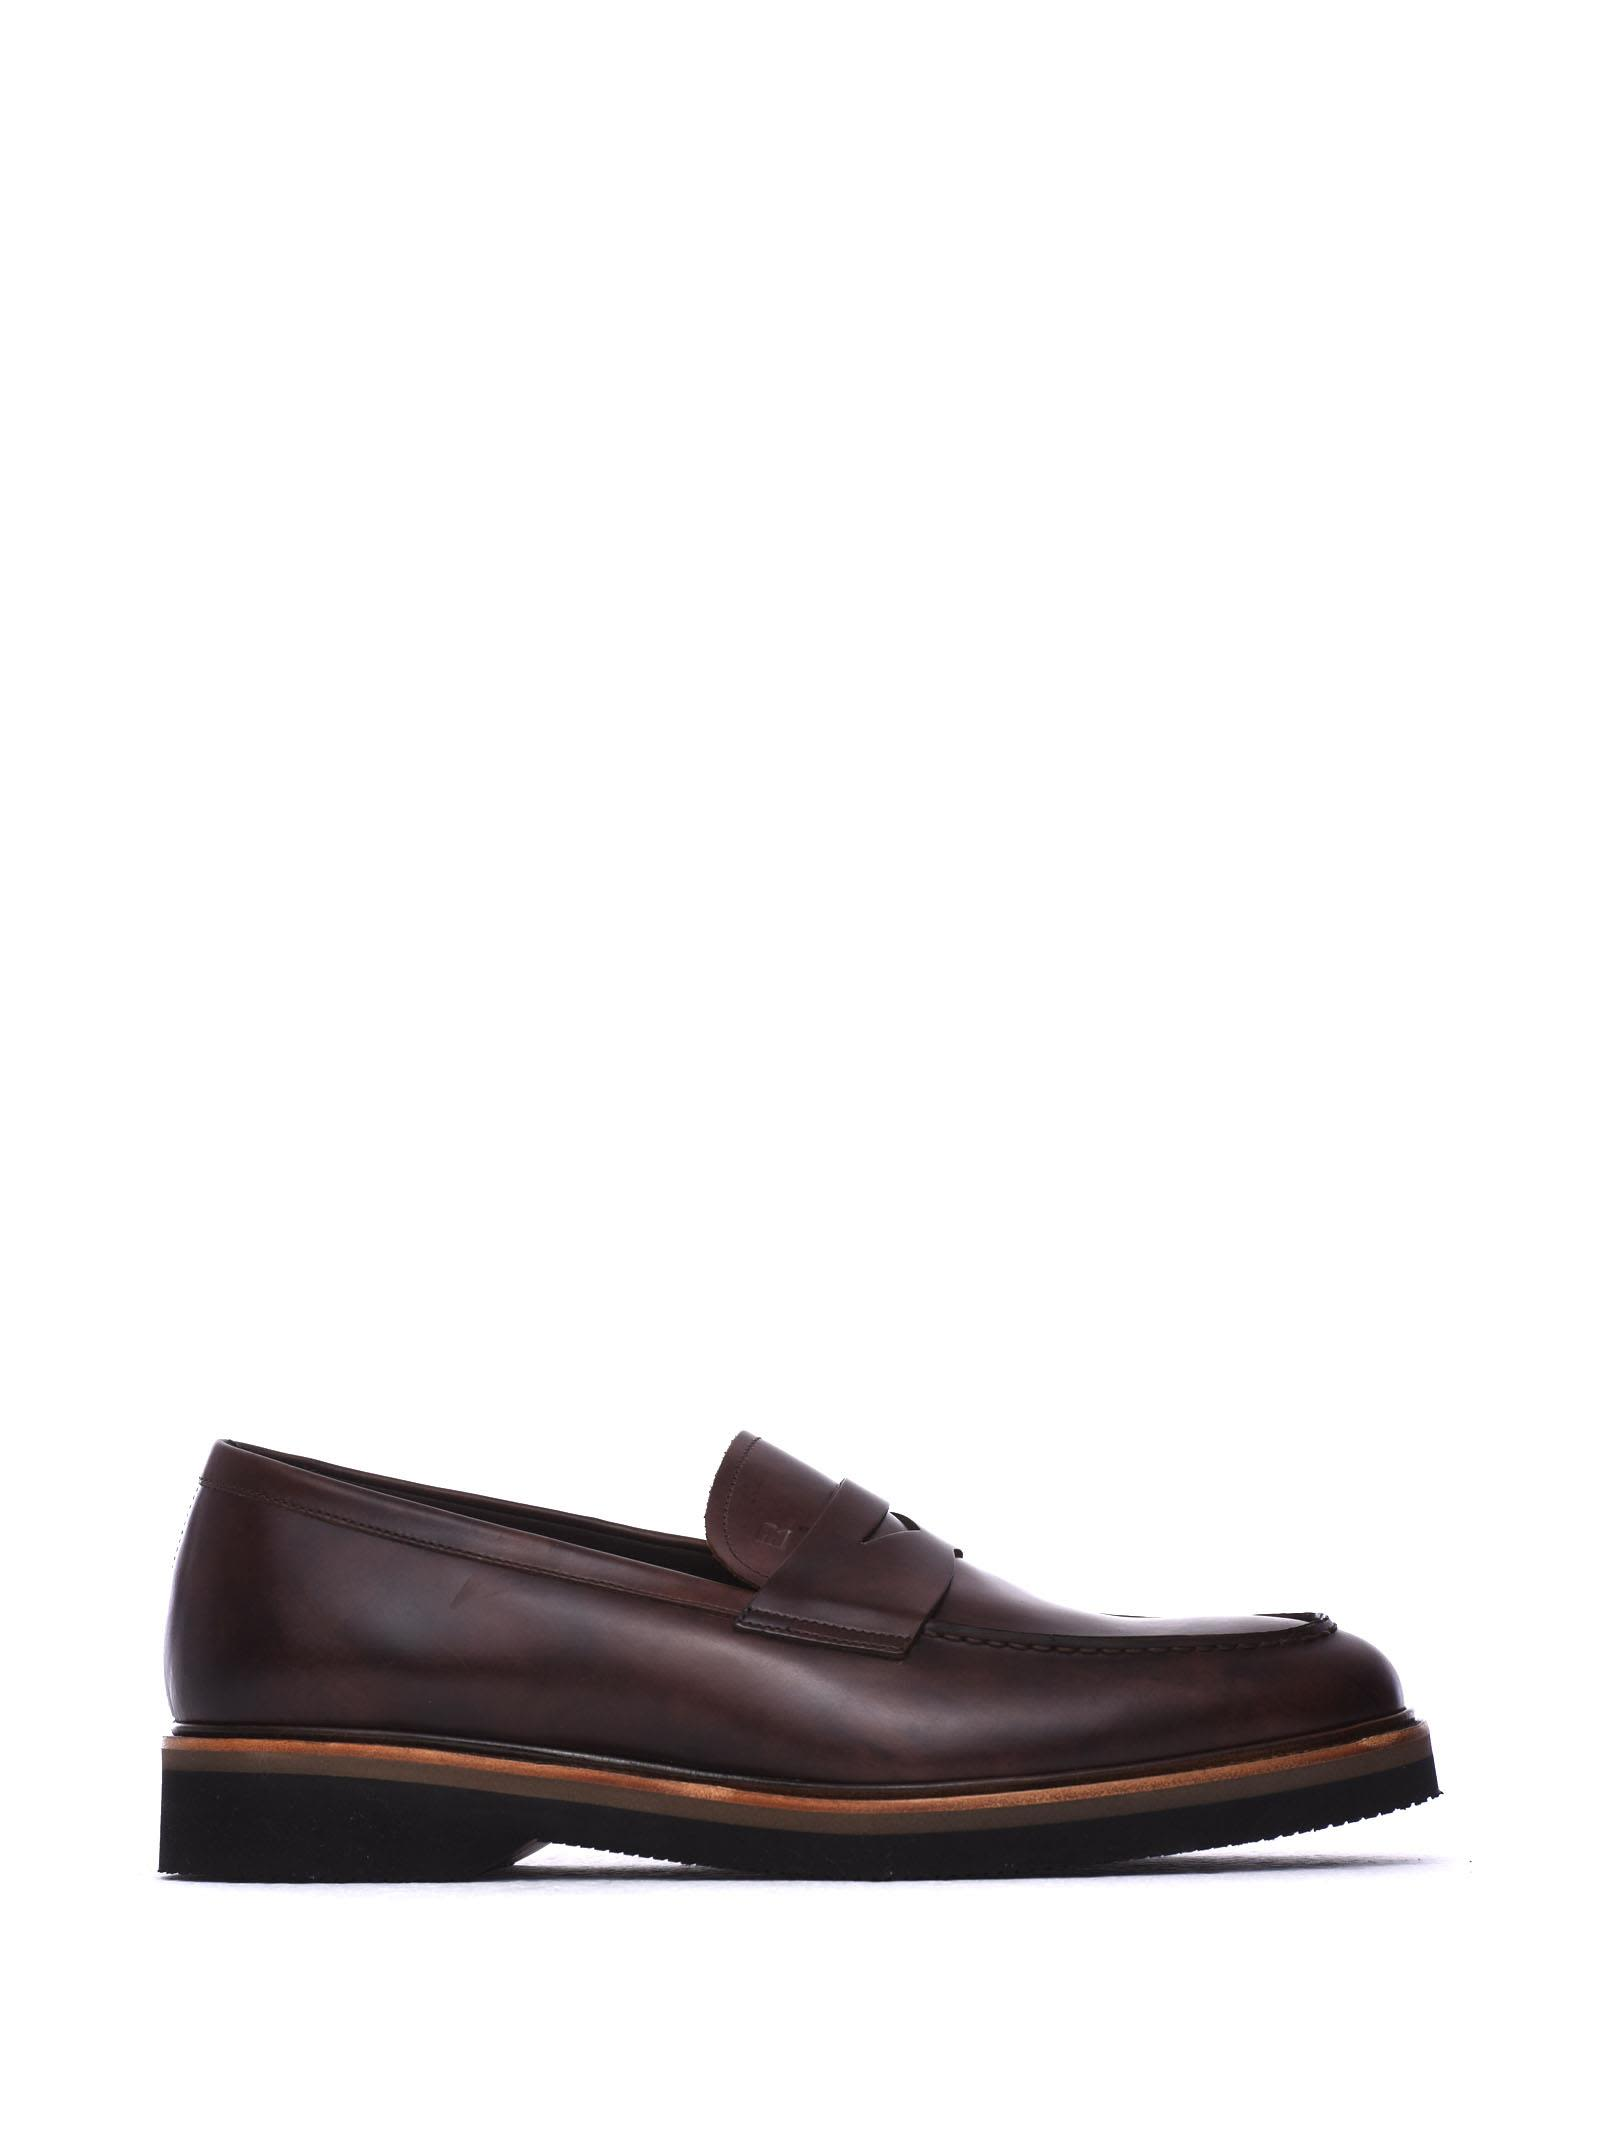 FRATELLI ROSSETTI ONE Ebony Leather Loafer in Ebano